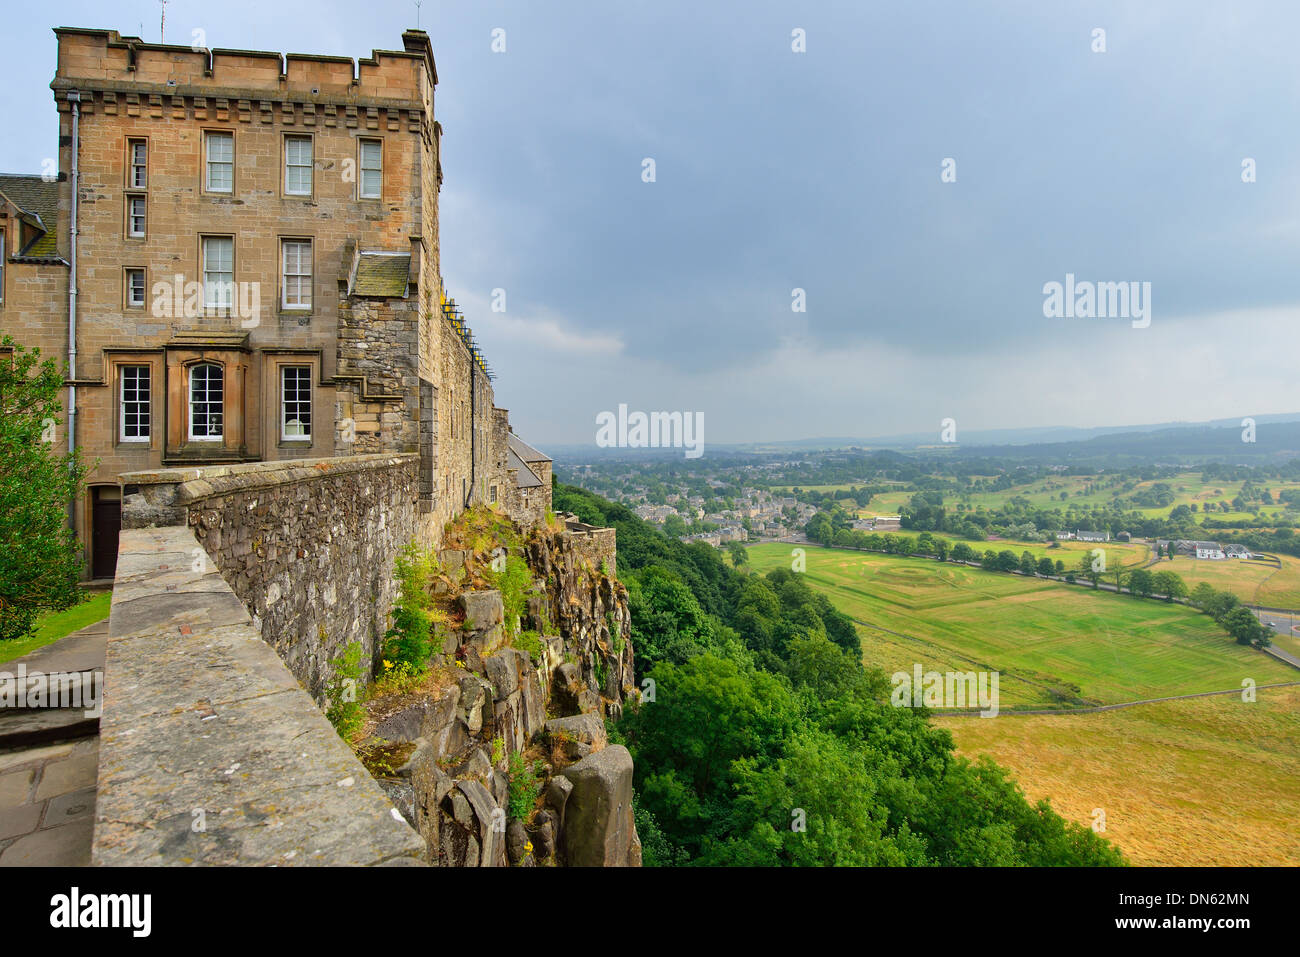 View from the castle wall, Stirling Castle, Stirling, Central, Scotland, United Kingdom - Stock Image